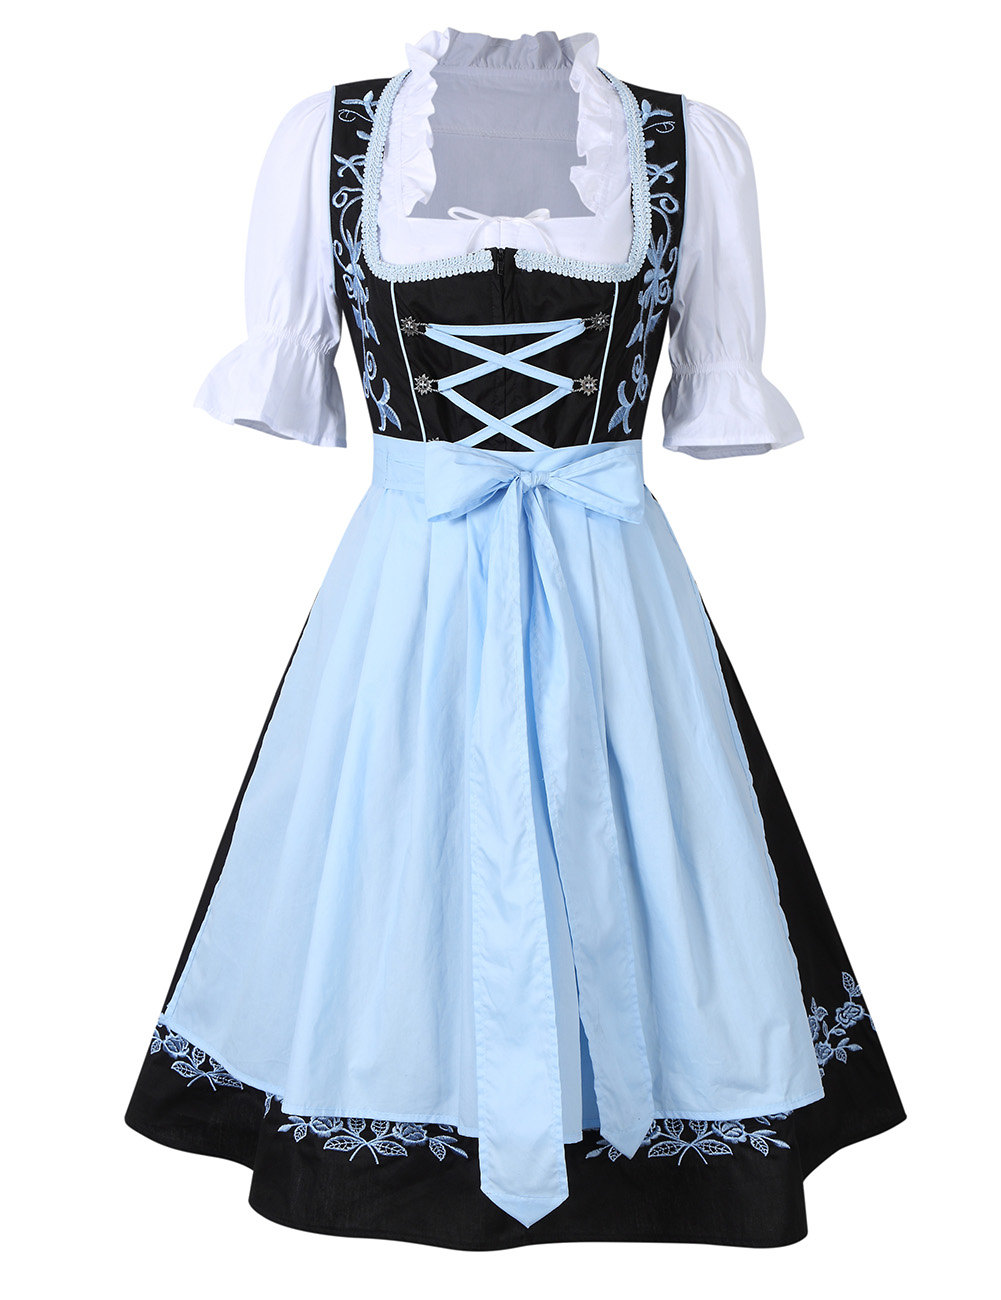 3Pcs Womens Traditional Bavarian German Classic Dirndl ...